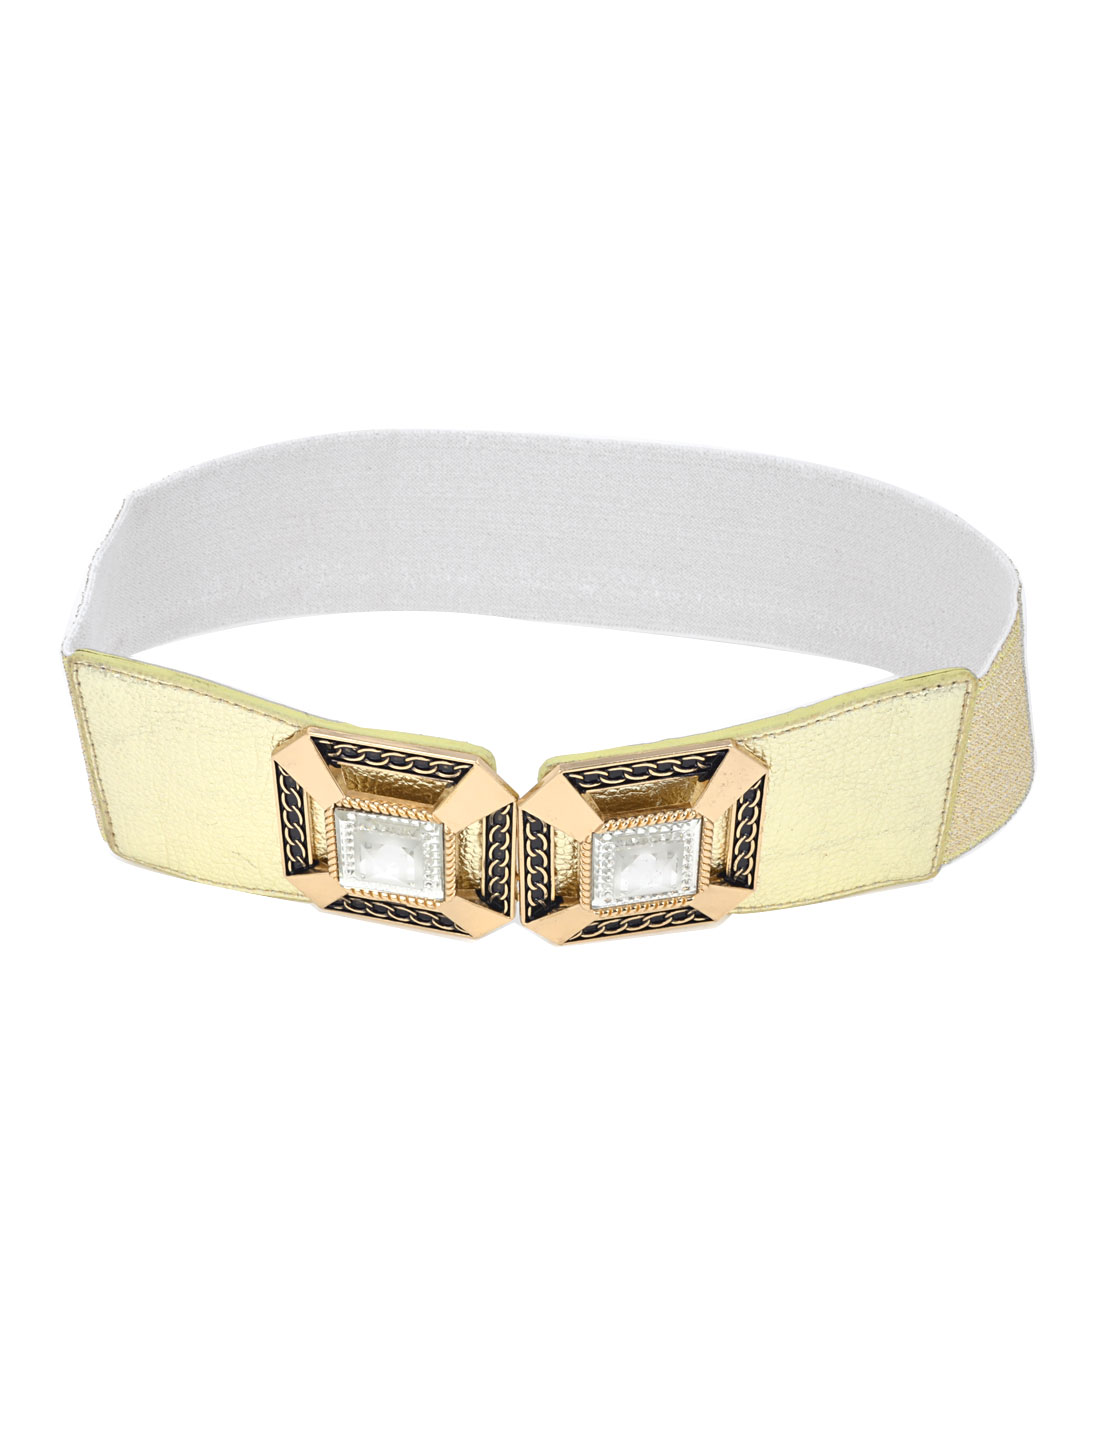 Women Square Crystals Inlaid Hook Buckle 6cm Width Stretch Cinch Belt Gold Tone